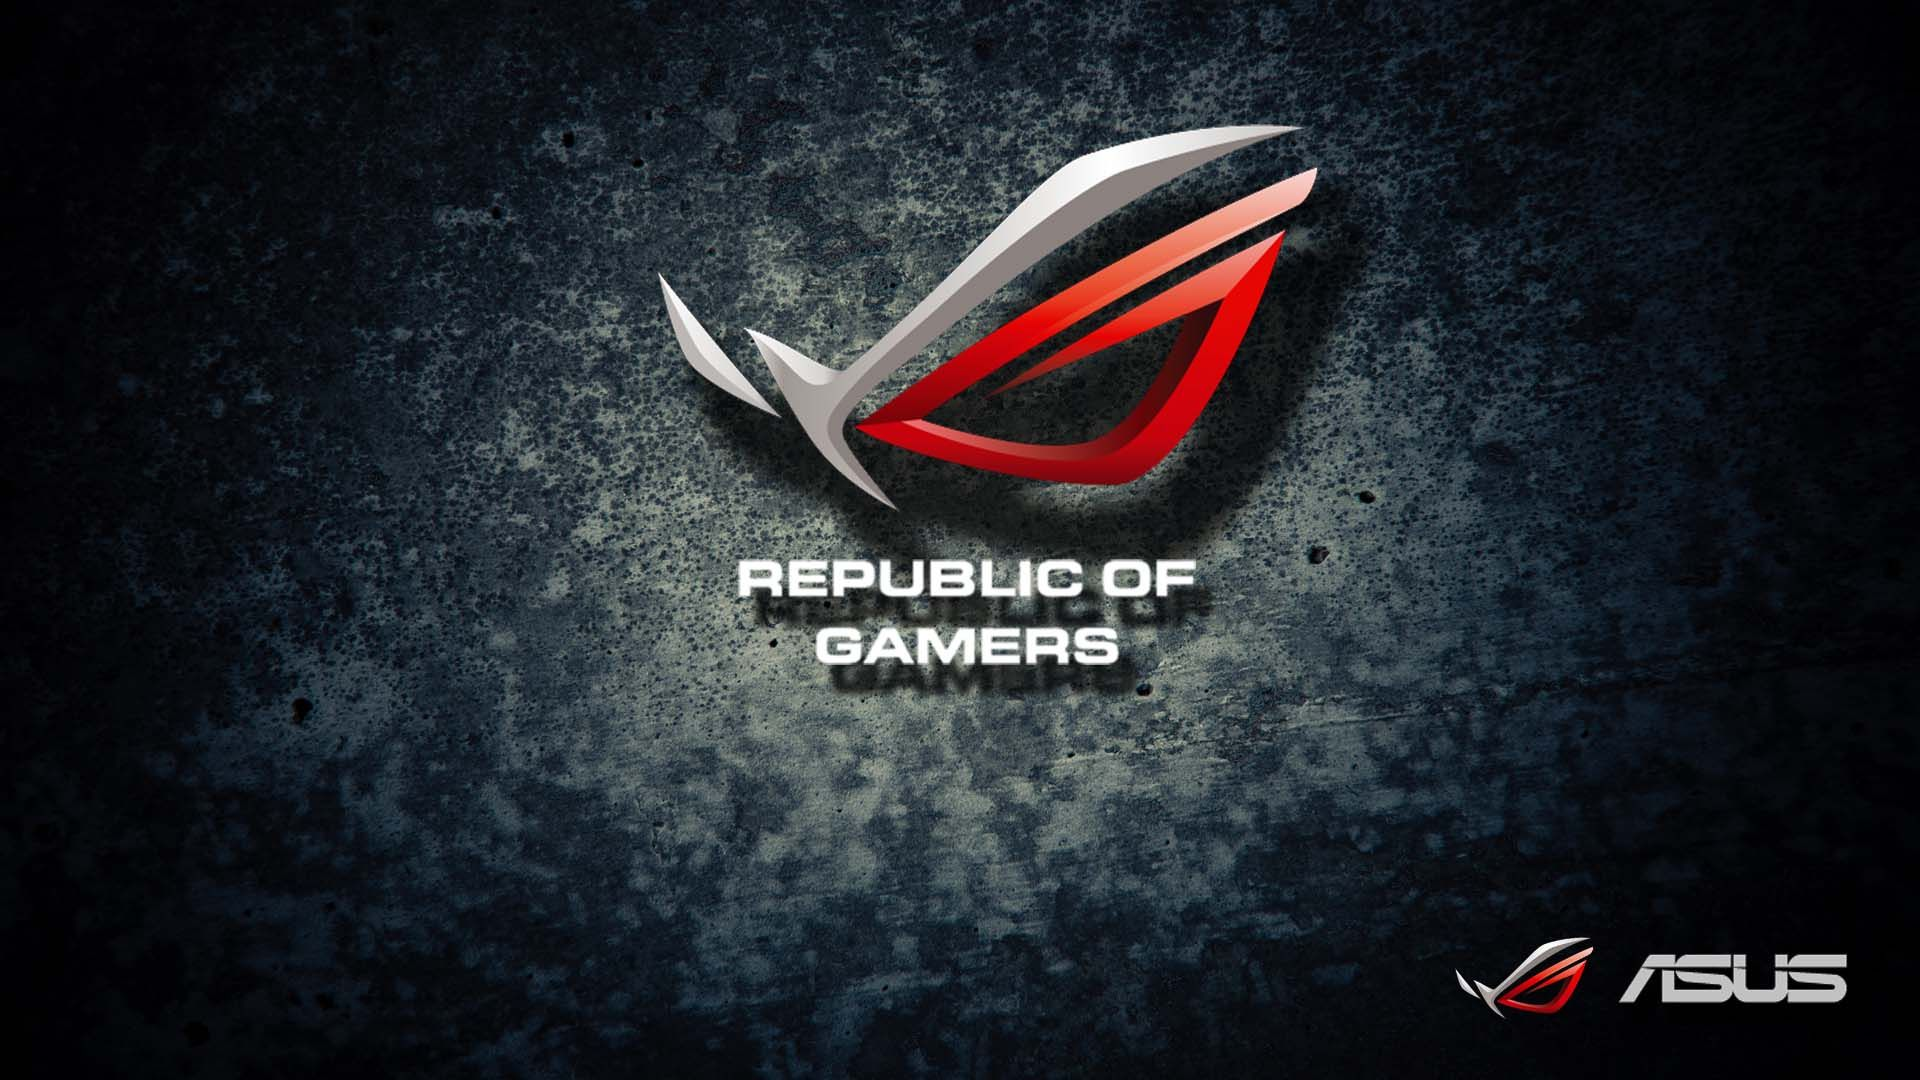 Pics photos rog blue background republic of gamers asus gamer asus - Here I Present Some Of The Best And Top Asus Desktop Wallpapers Collection For Asus Users